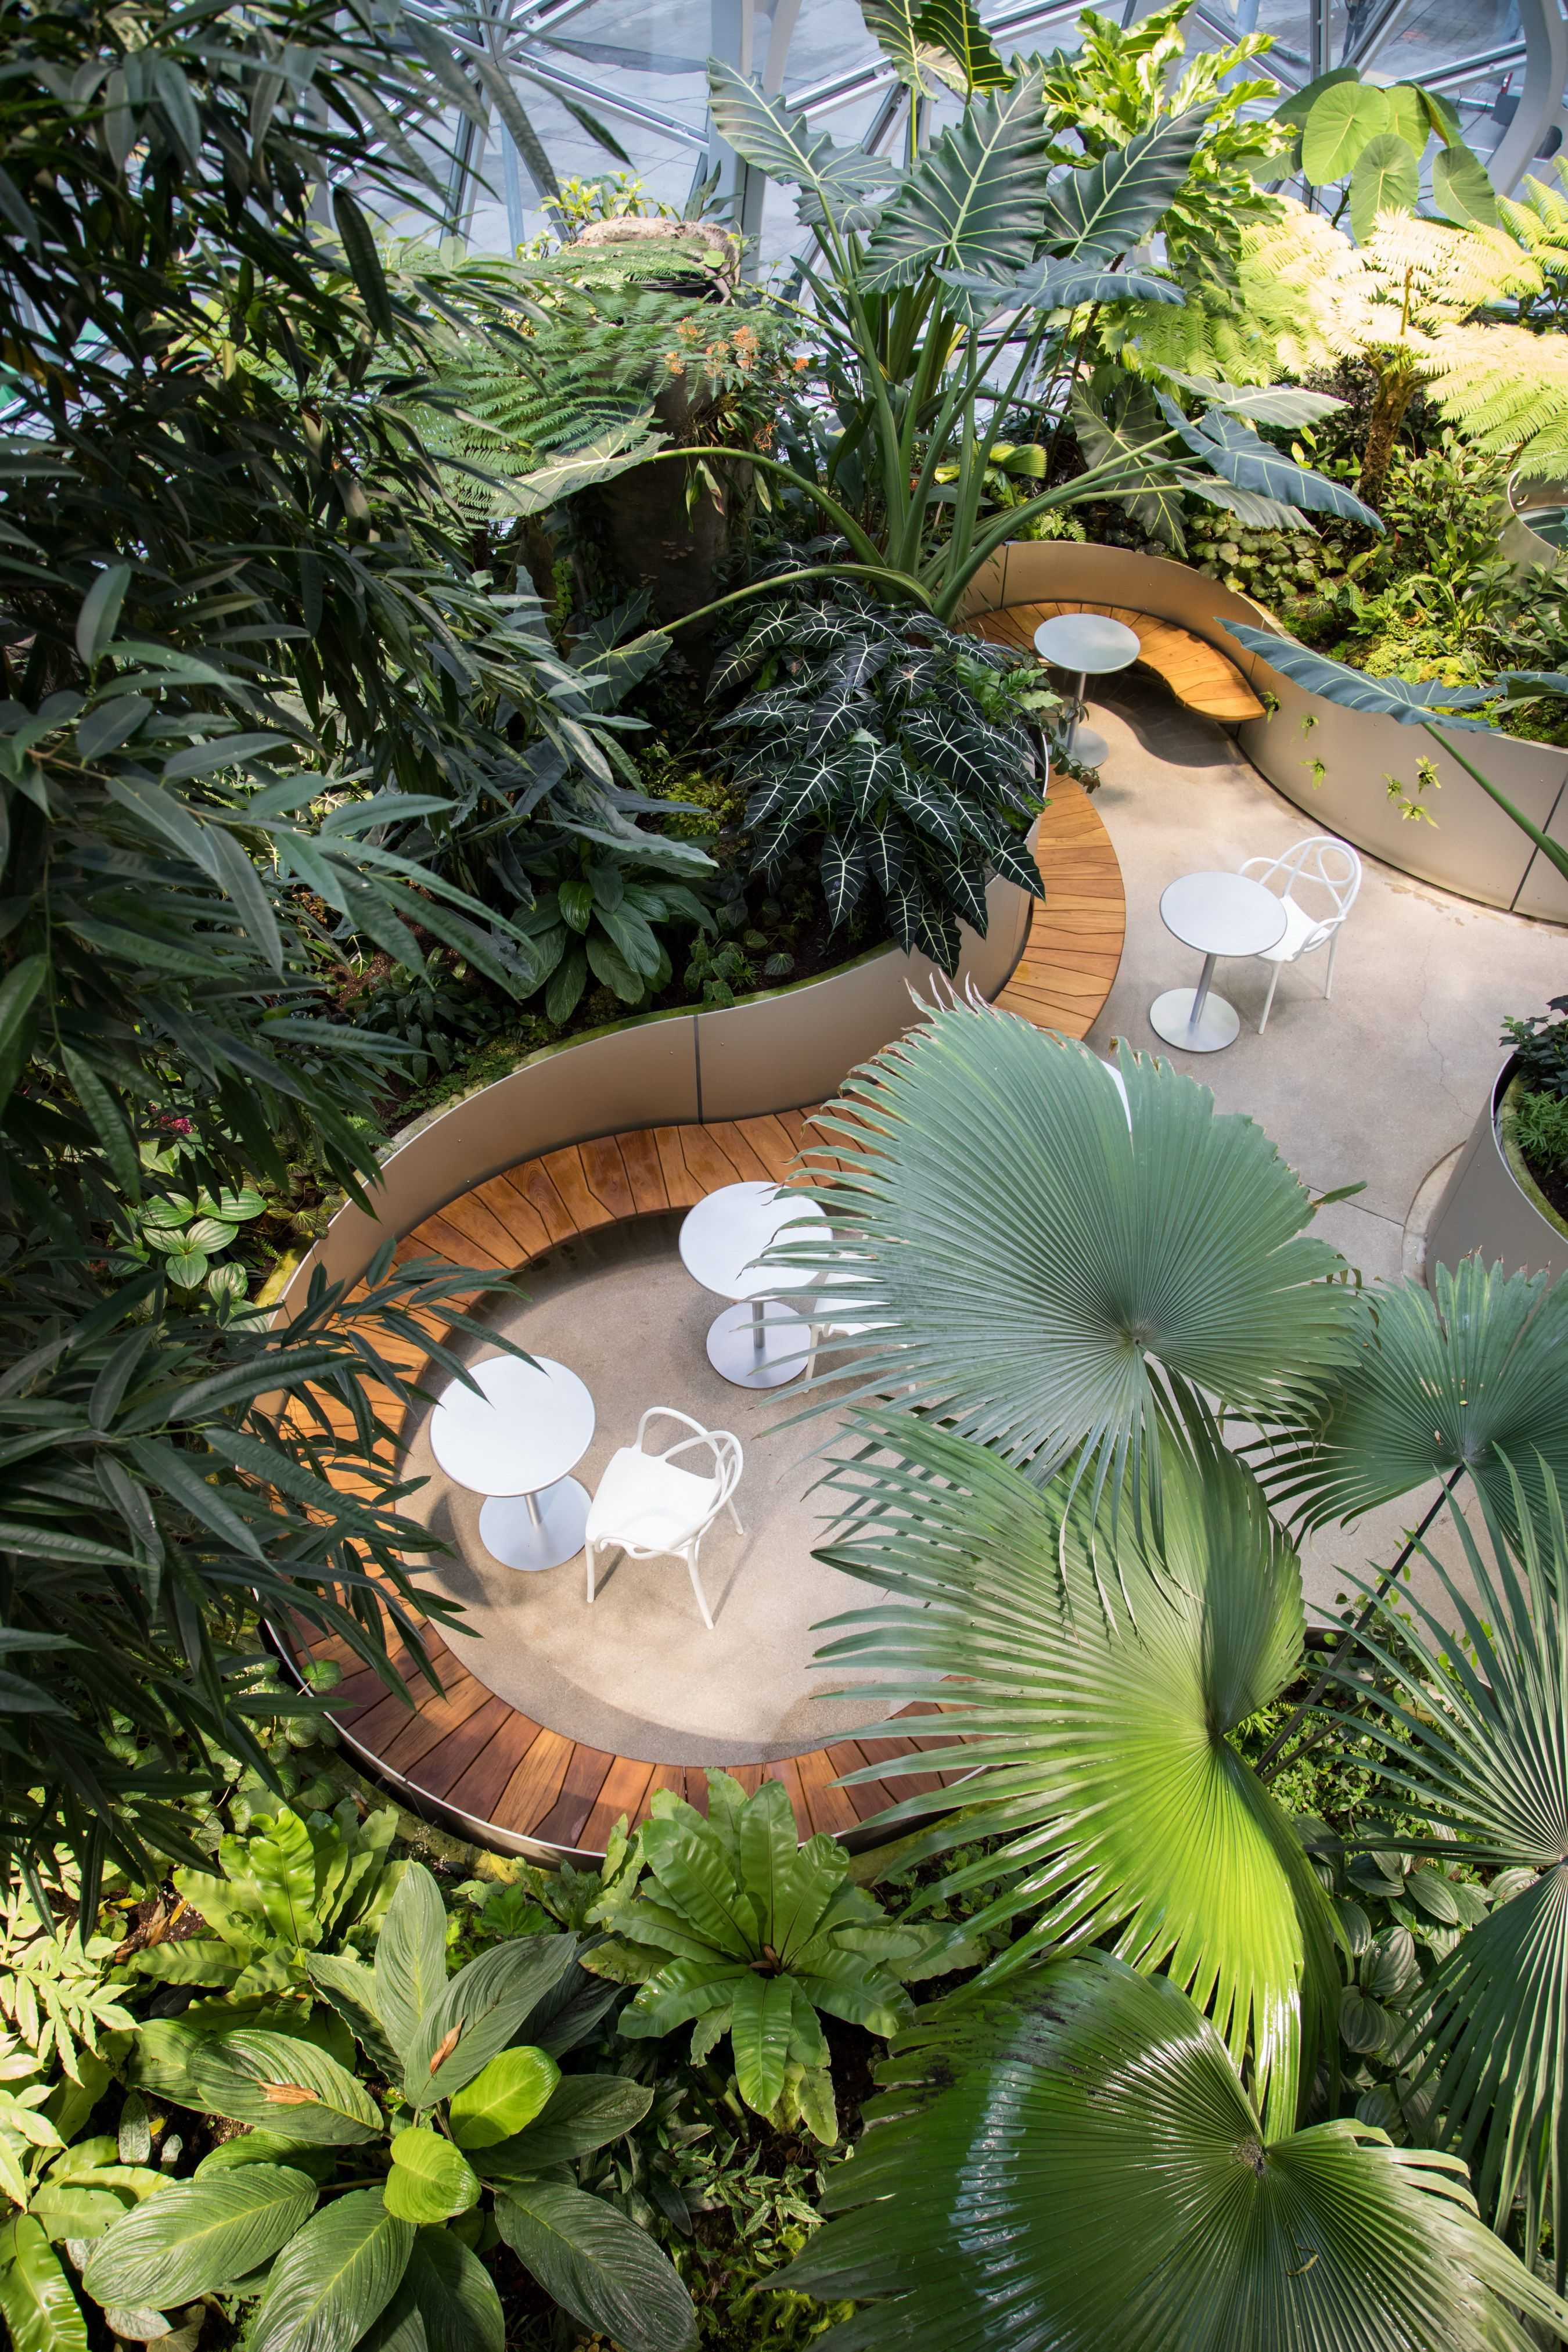 The Spheres In The New Amazon Headquarters Wowow Home Magazine Landscape Design Green Architecture Exterior Design